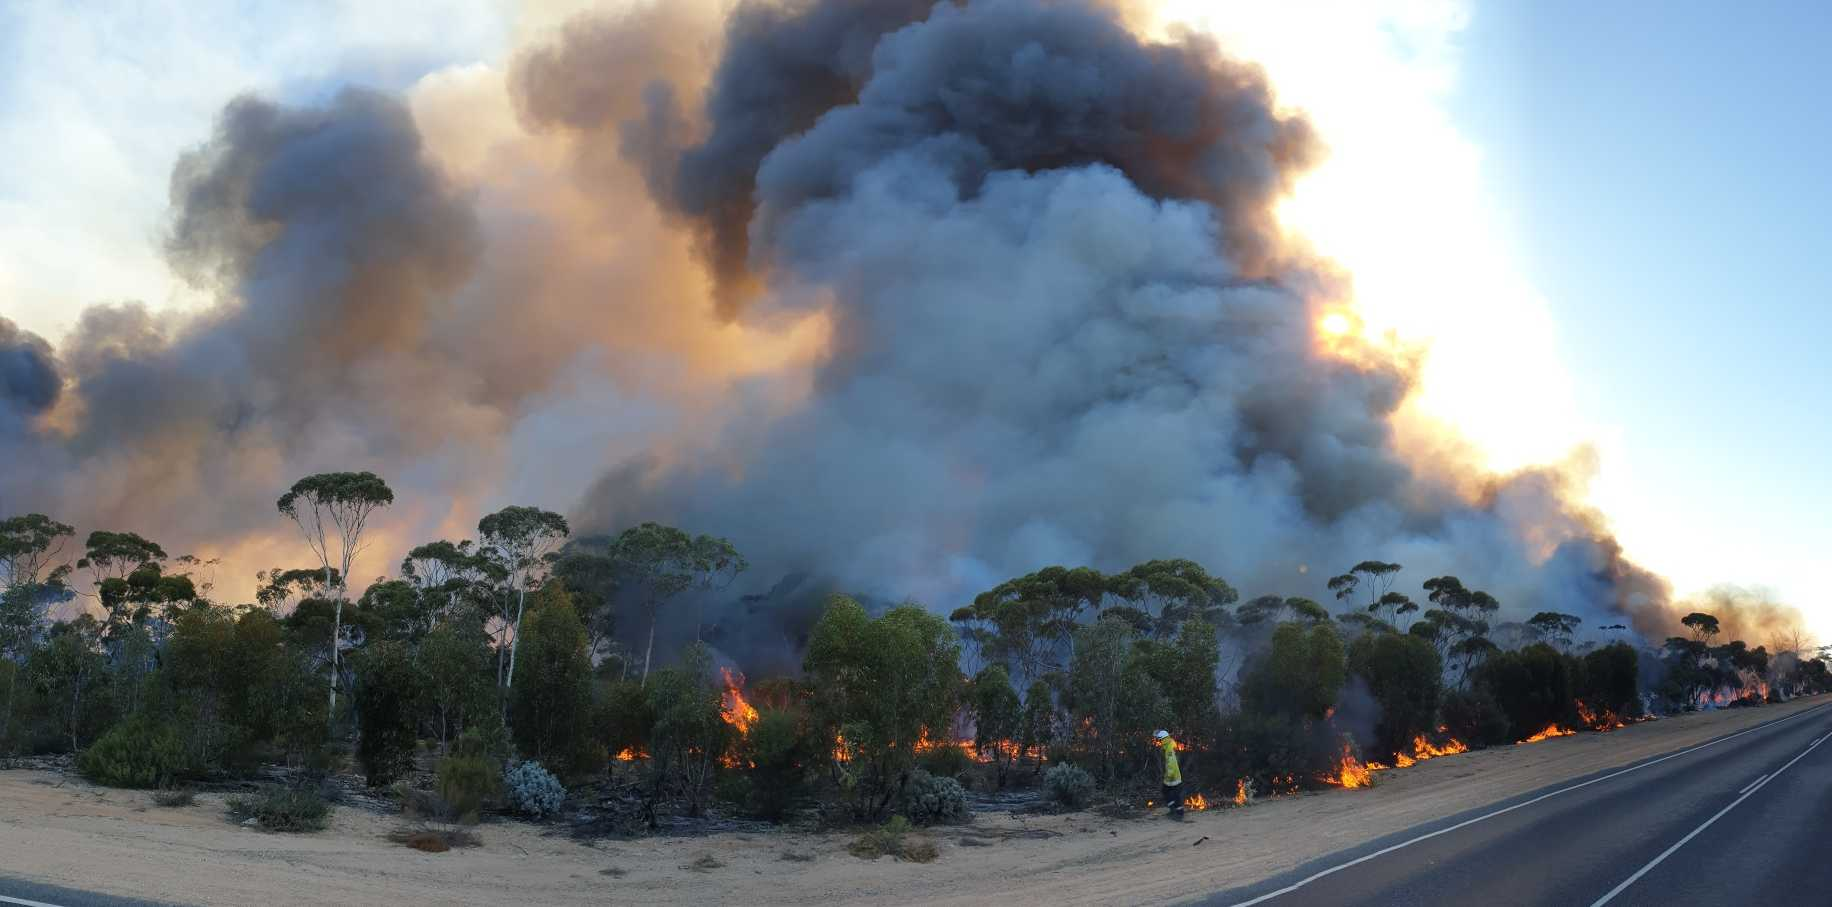 DFES shared this photo this morning, highlighting the dangerous bushfires in Western Australia. PHOTO: DFES/ABC Goldfields-Esperance